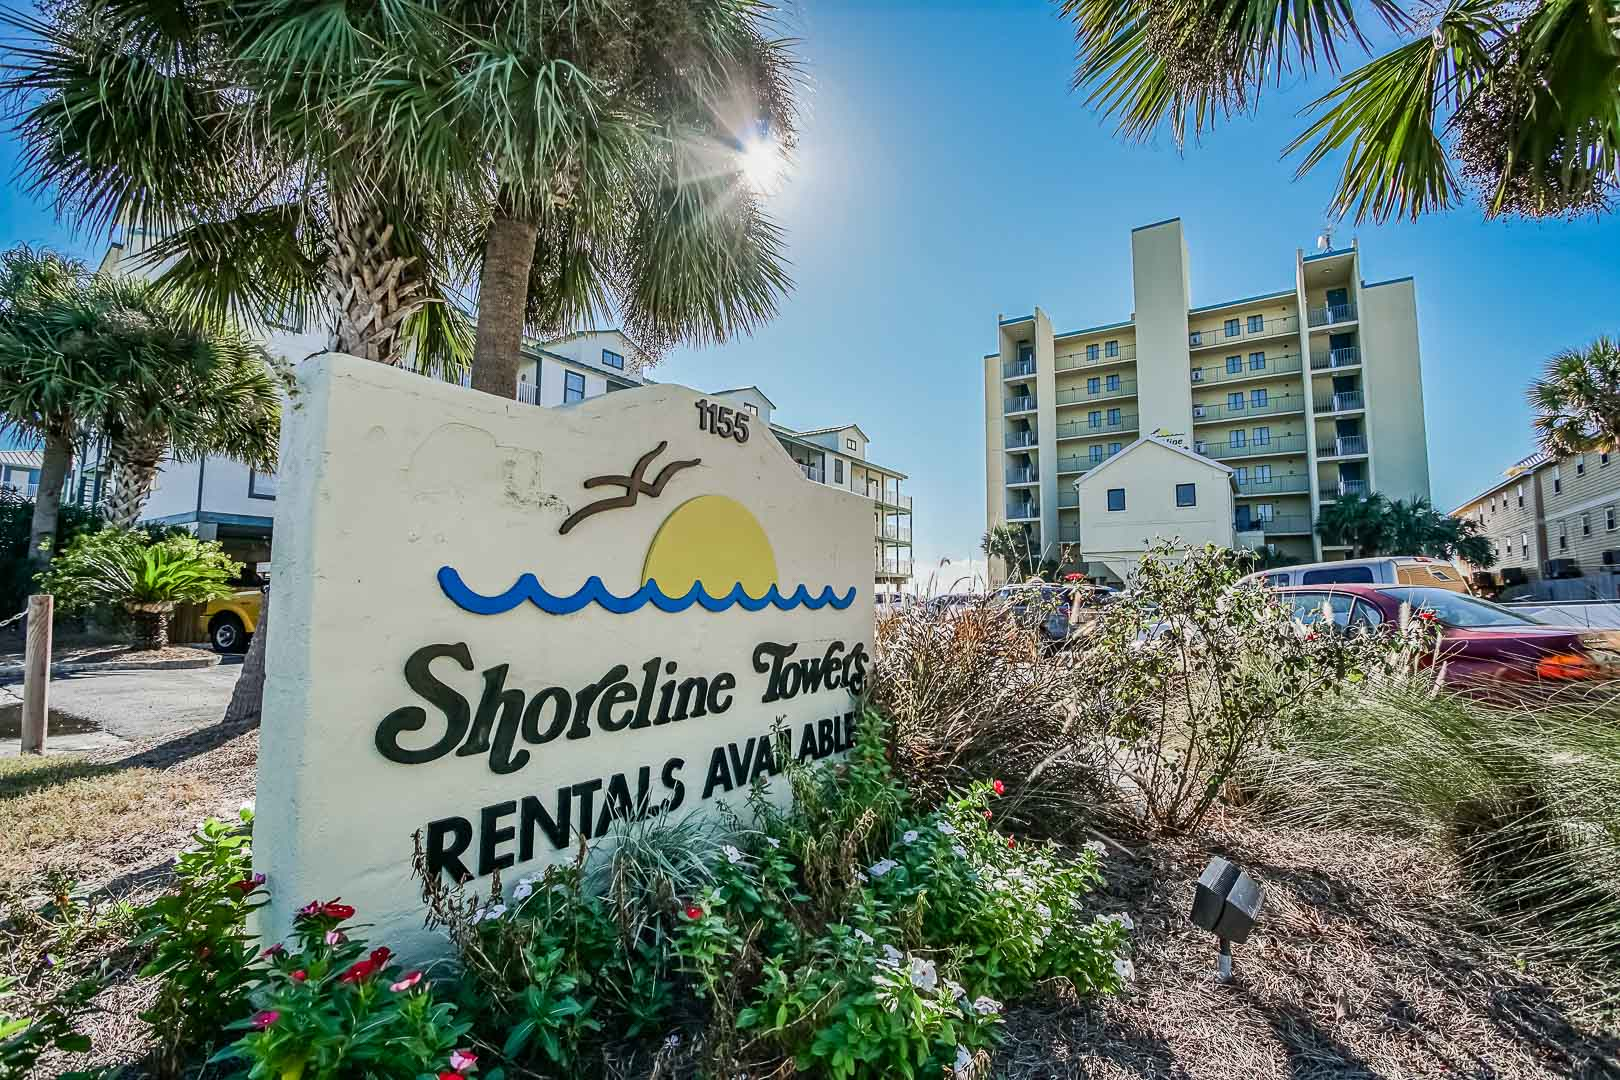 A vibrant resort signage at VRI's Shoreline Towers in Gulf Shores, Alabama.